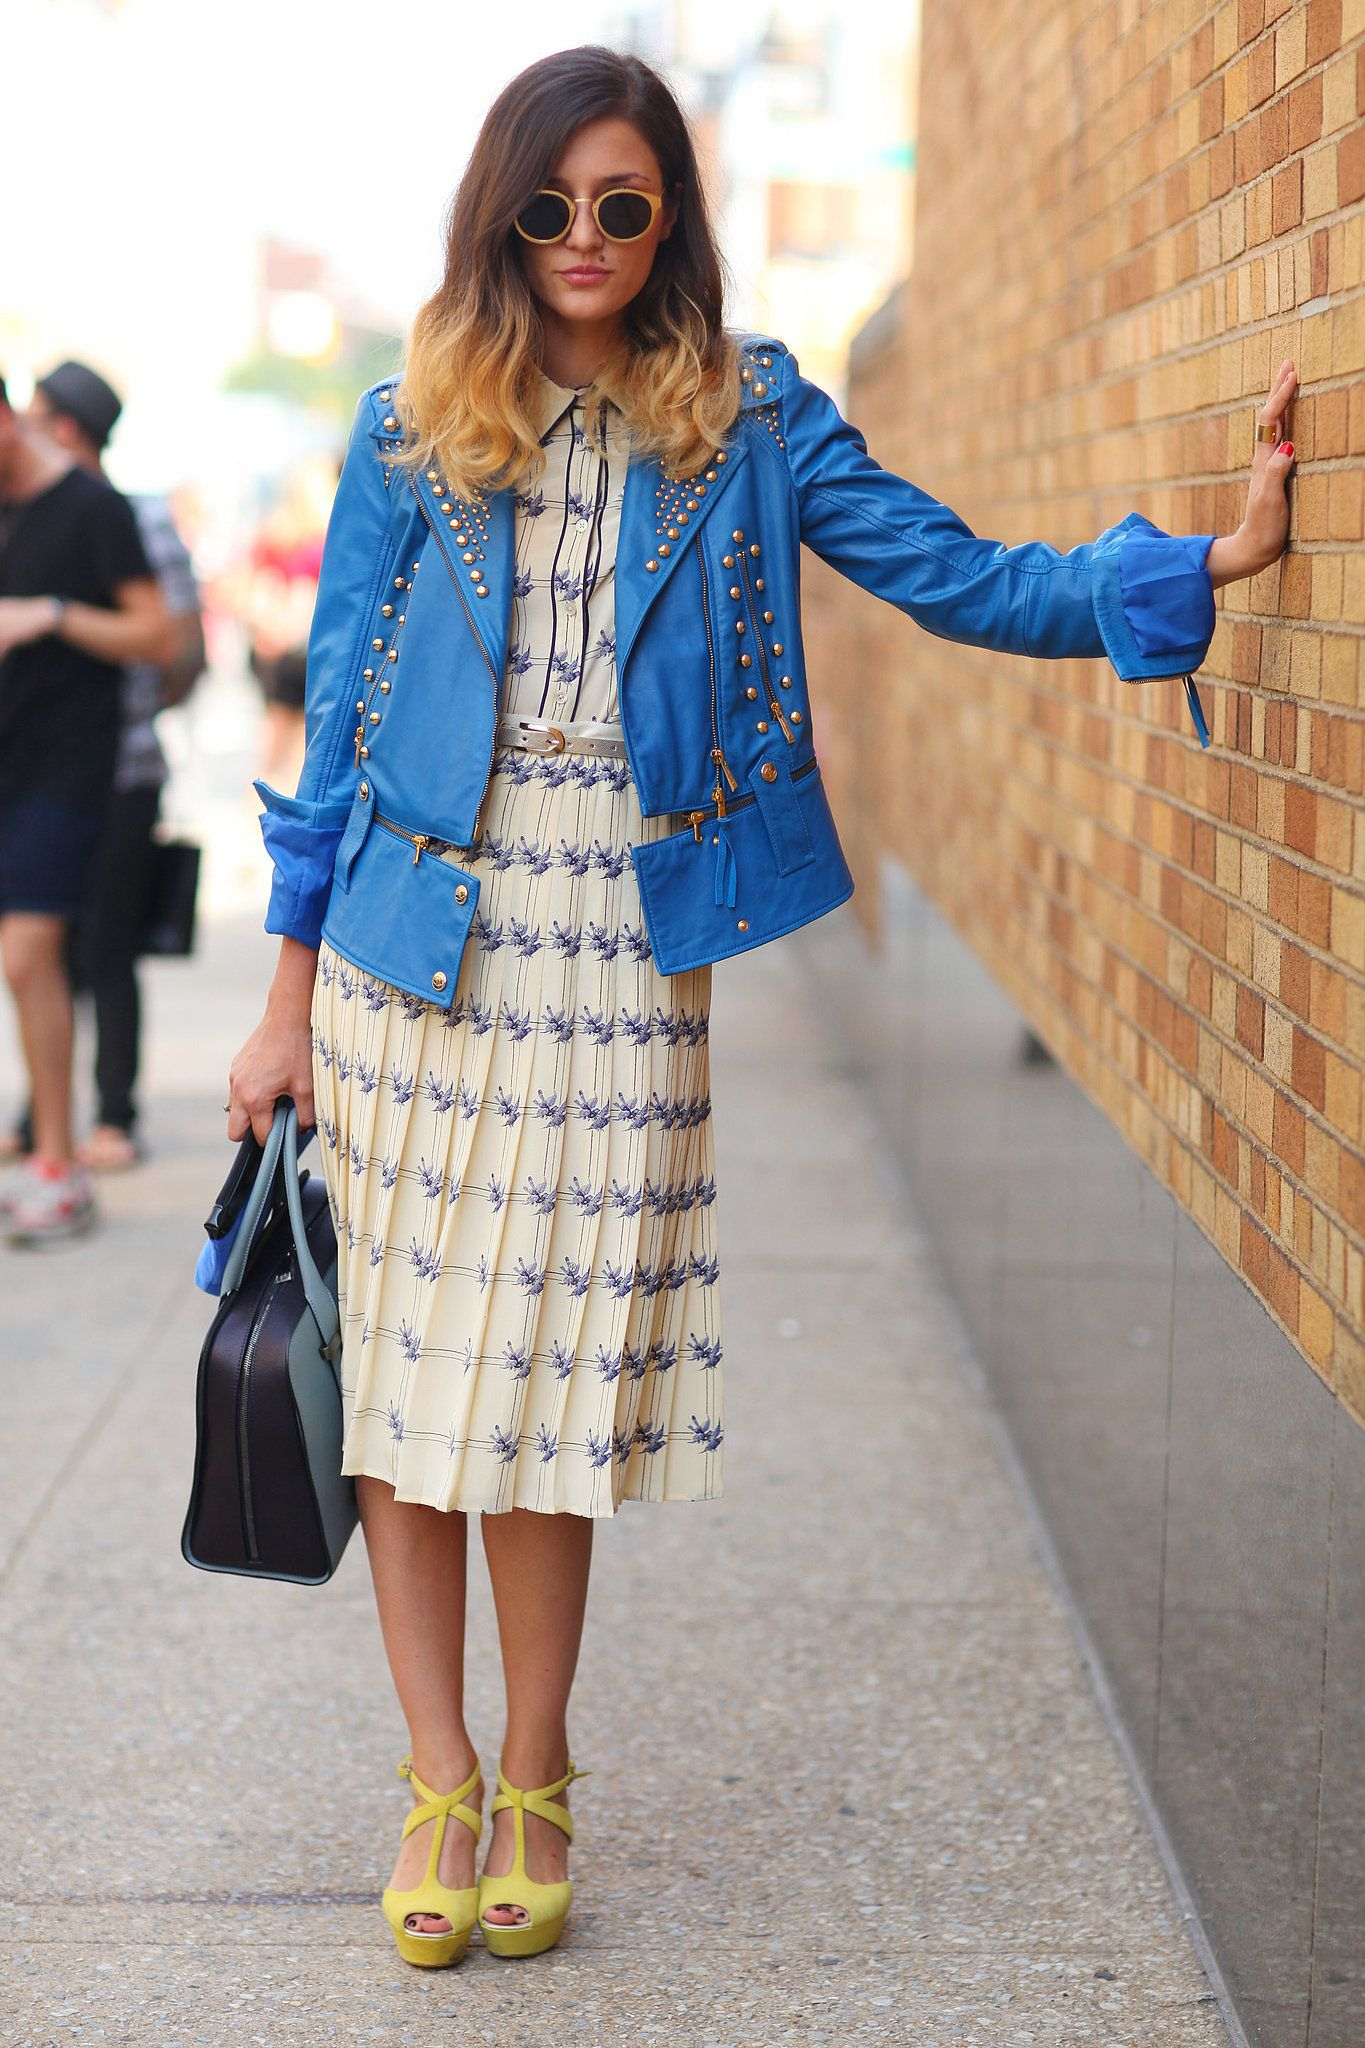 Style Inspiration: The Best Street Style at NY Fashion Week Spring 2014 >> A little retro-feeling dress topped with a not-so-retro studded jacket added up to a serious style moment.